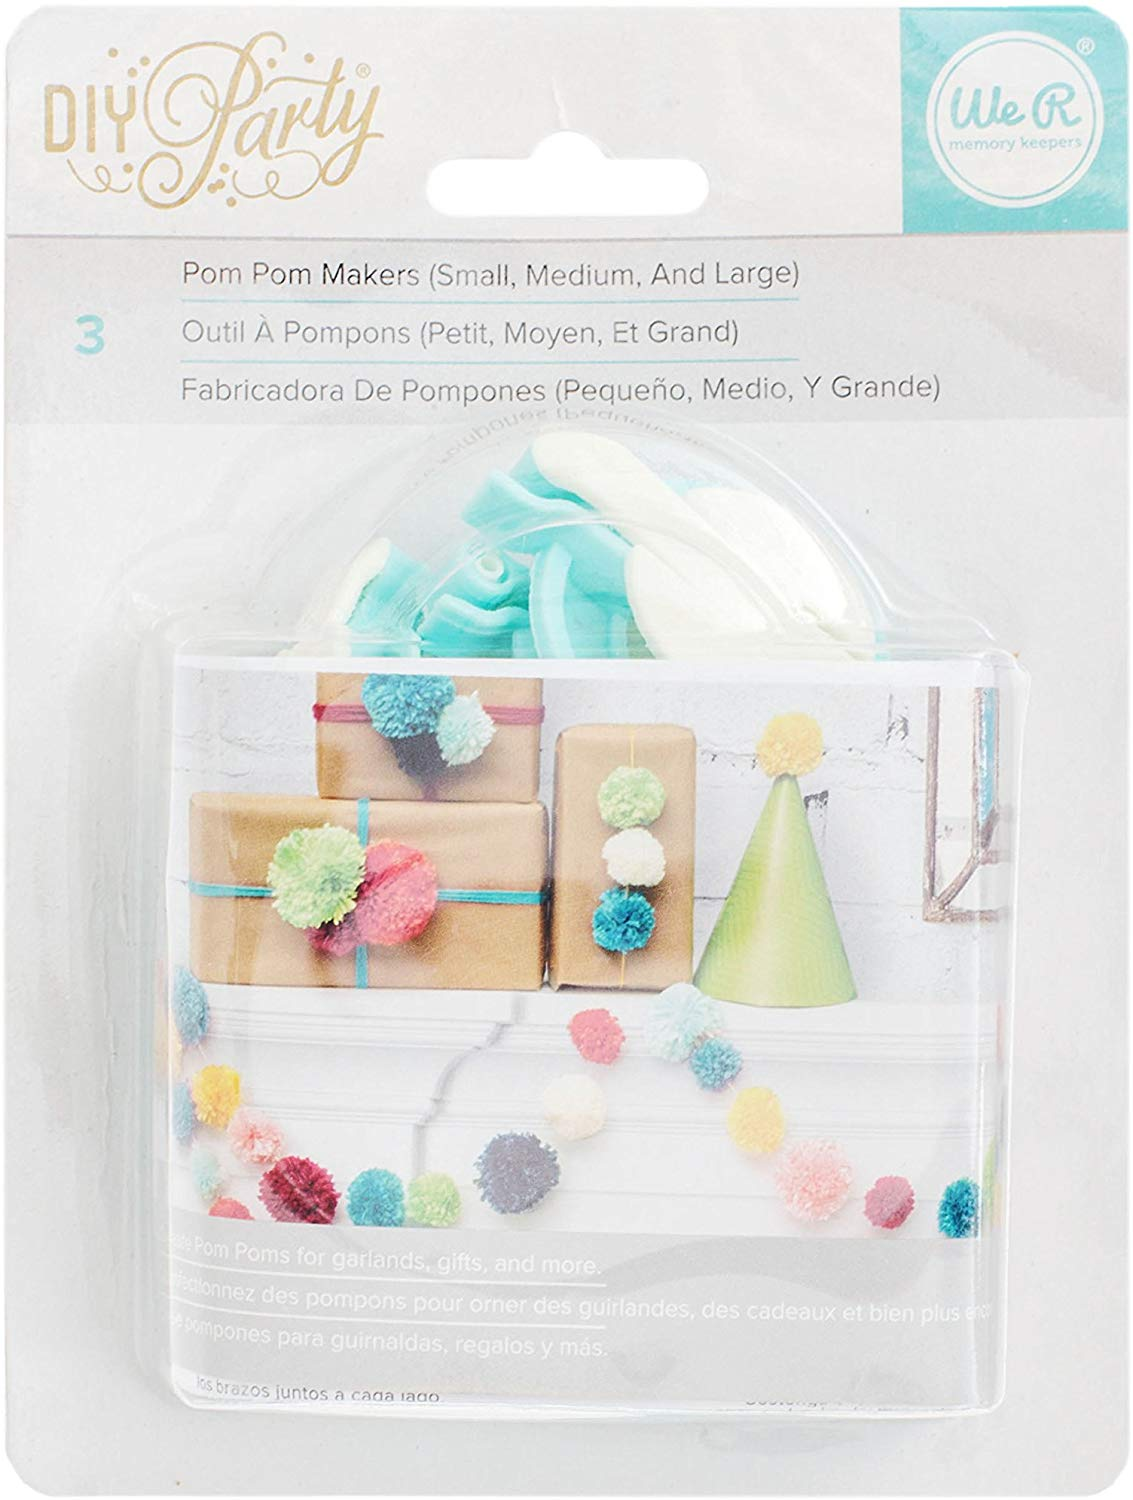 We R Memory Keepers - DIY Party Collection - Pom Pom Maker